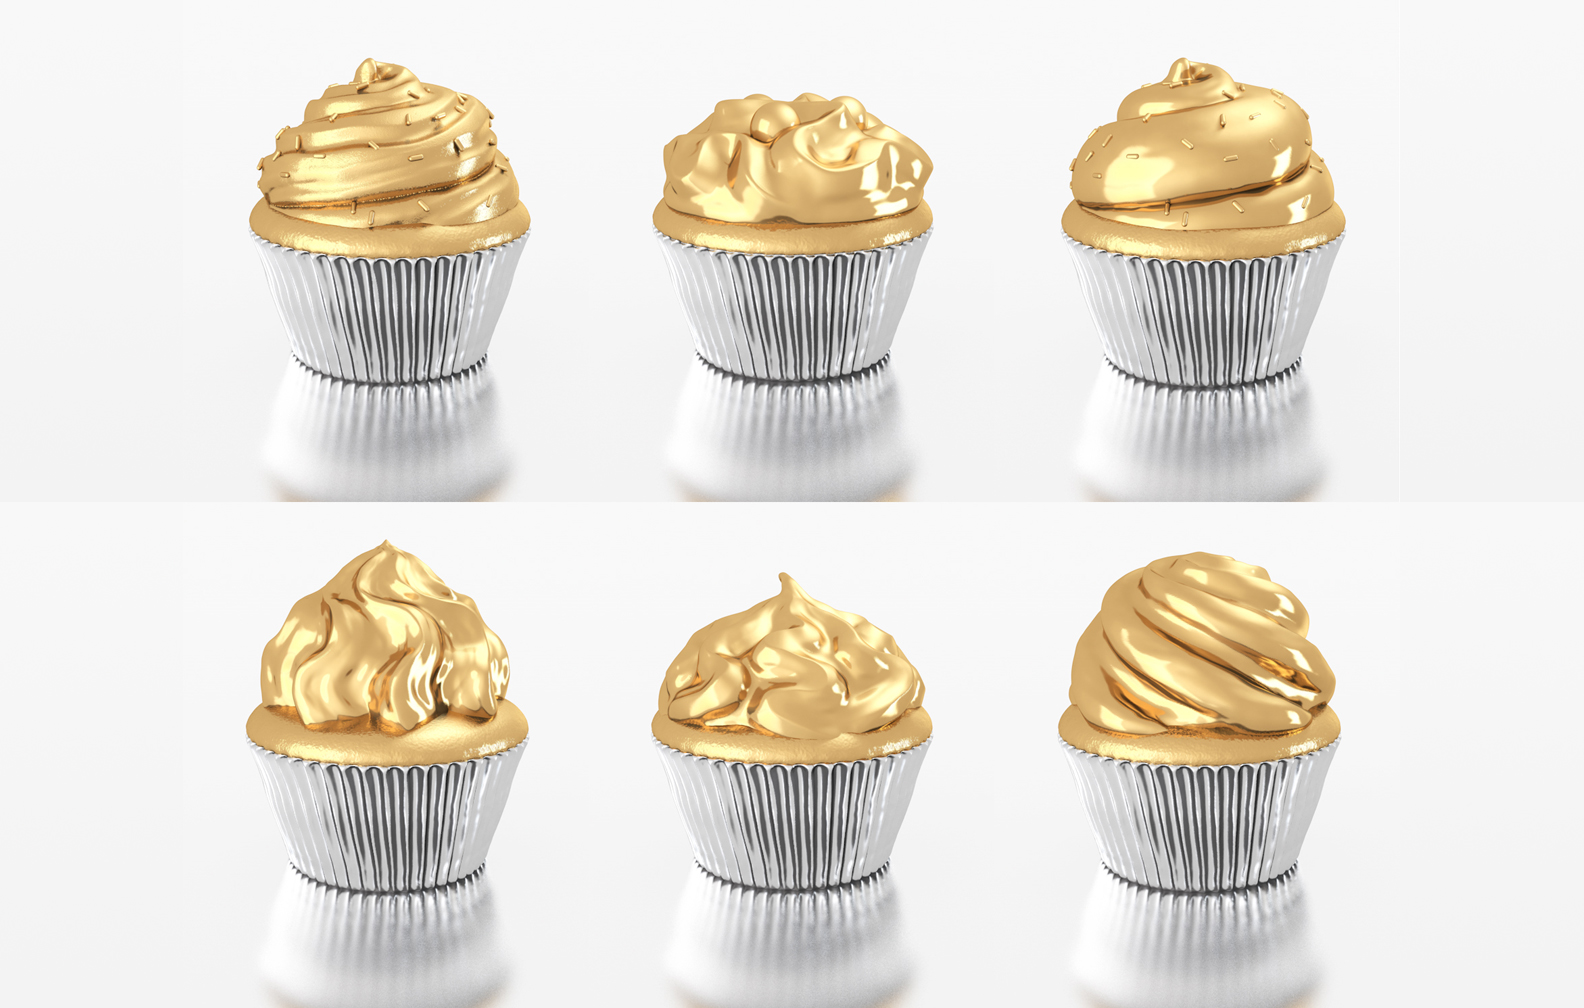 A series of cup cakes I designed. One was chosen, 3D printed and then plated in gold and nickle to be auctioned off for charity.